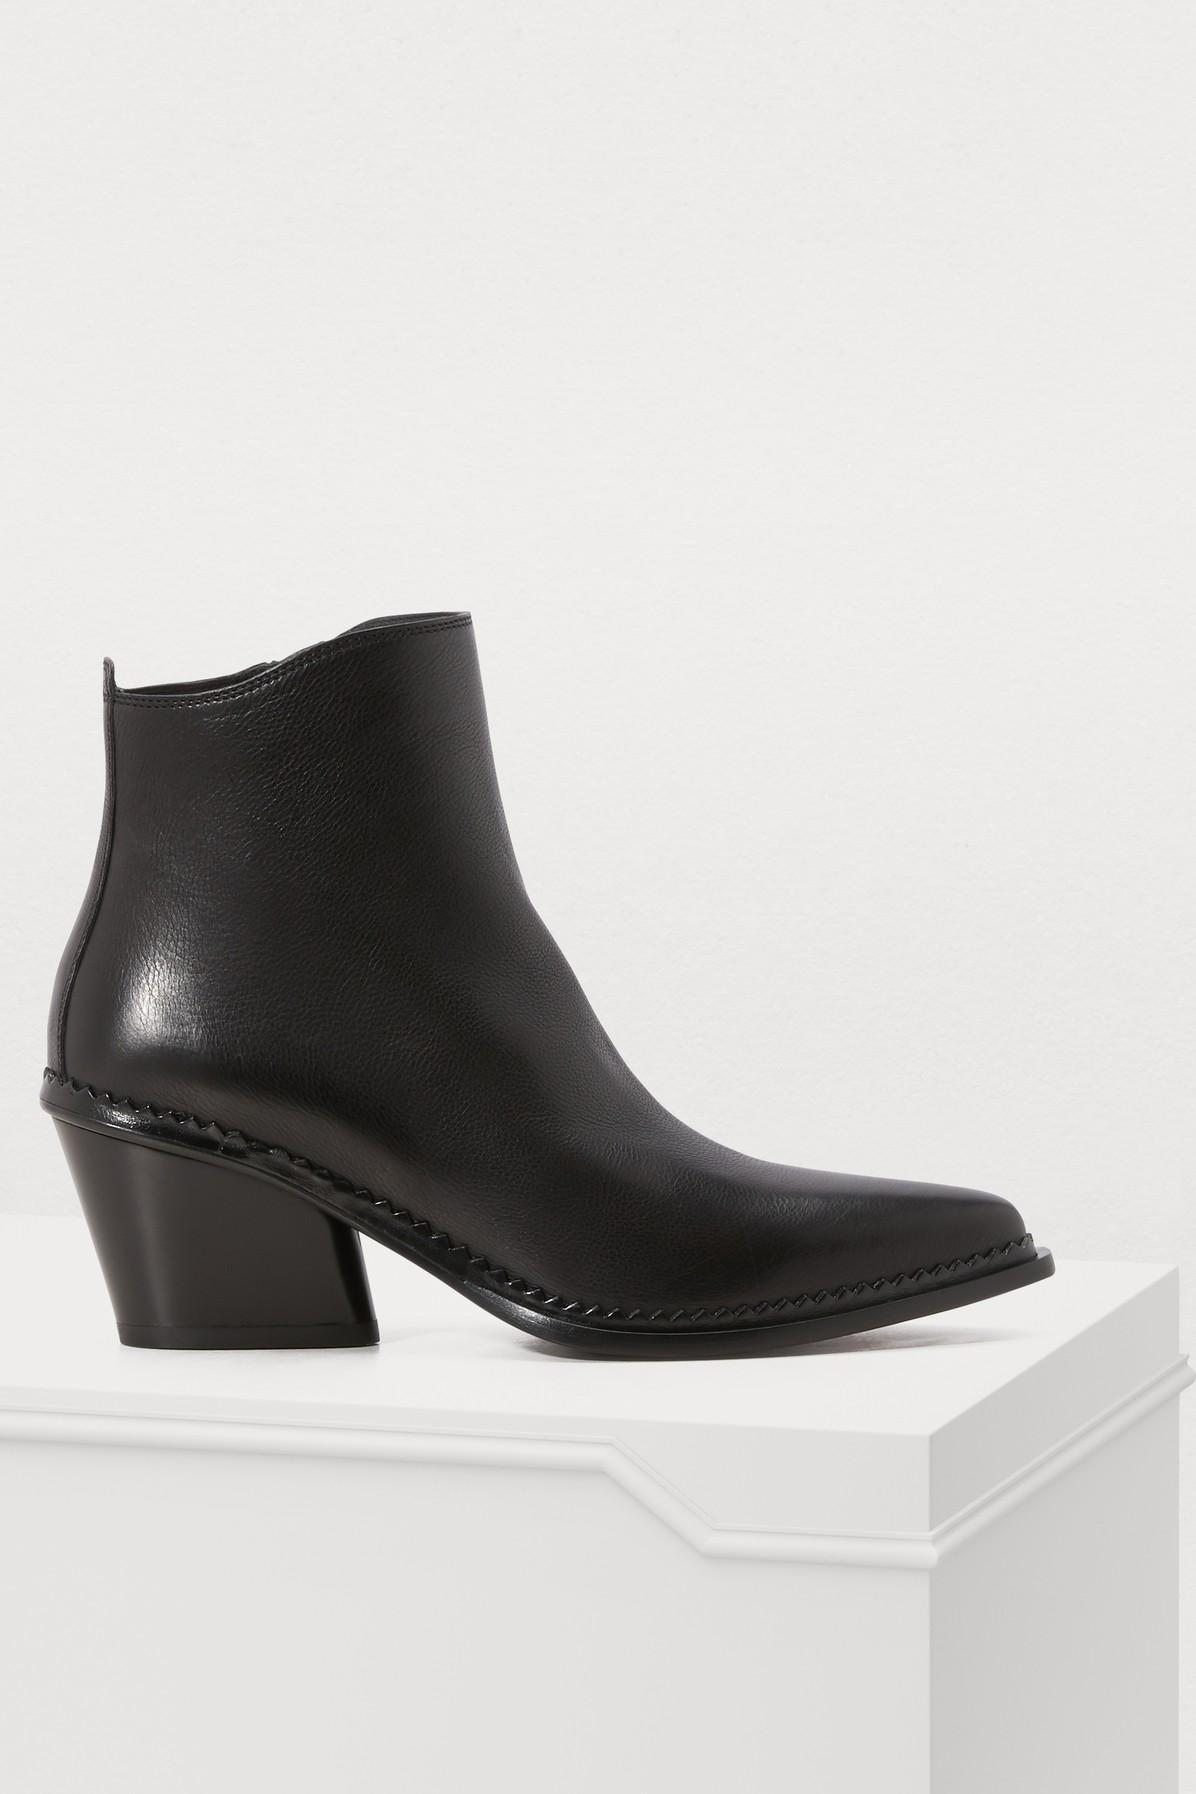 682bfa6d77c3 Sartore Frida High-Heeled Ankle Boots In Nero